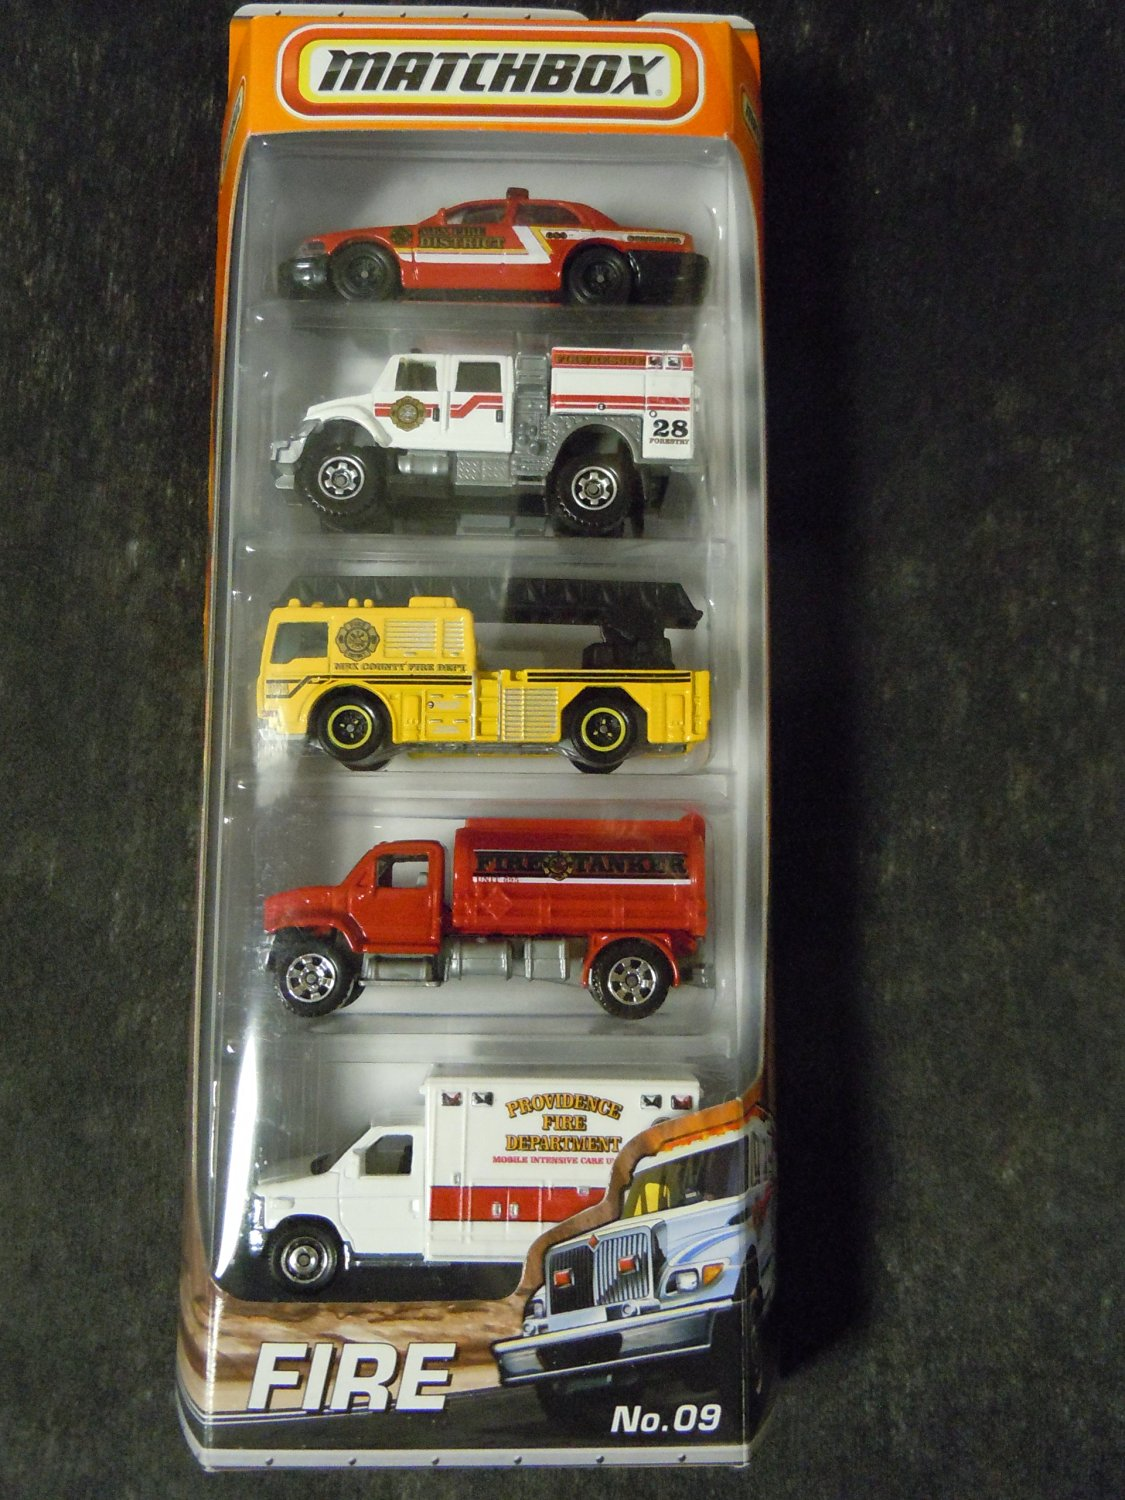 2010-2011 MATCHBOX 5 PACK, FIRE cars #9: Ford Crown Victoria, International WorkStar Brush Fire Truck, Fire Engine, MBX Tanker, Ford E-350 Ambulance